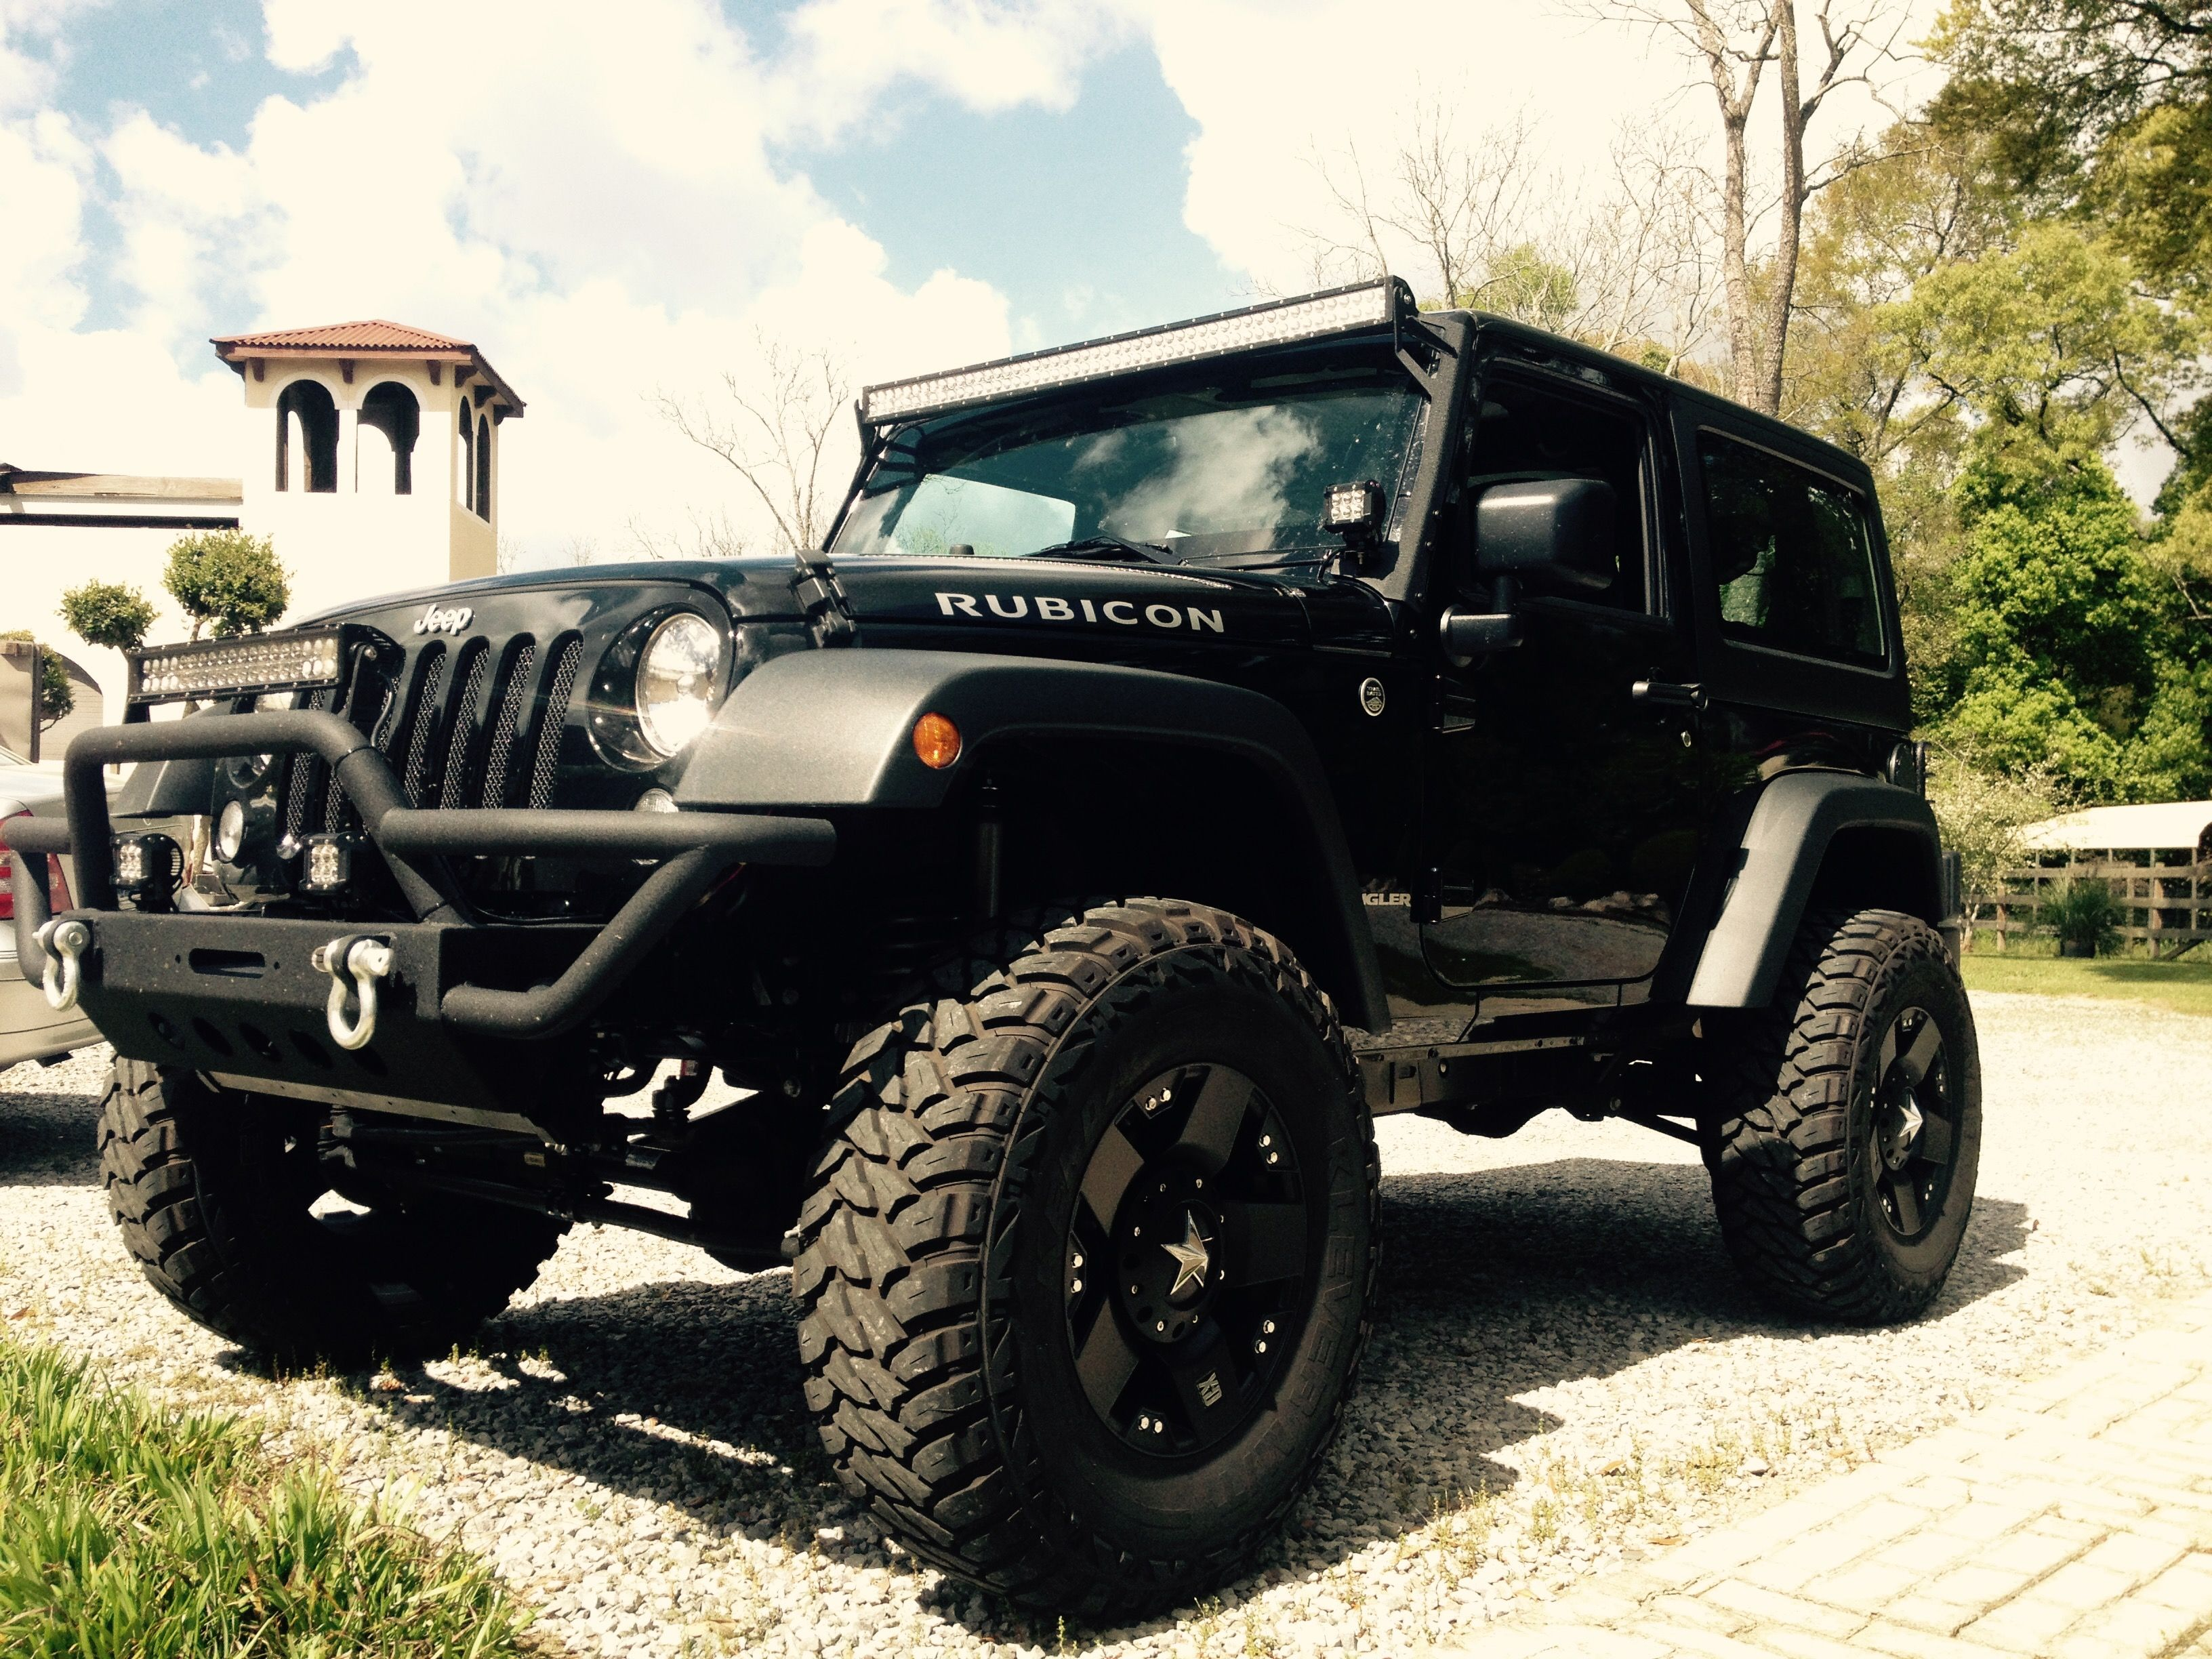 Black Jeep Wrangler 2 Door 4 Inch Lift 35 Inch Tires Black Rockstar Rims 50 Inch Led Light Bar 2 Black Jeep Wrangler Jeep Wrangler Jeep Wrangler Unlimited